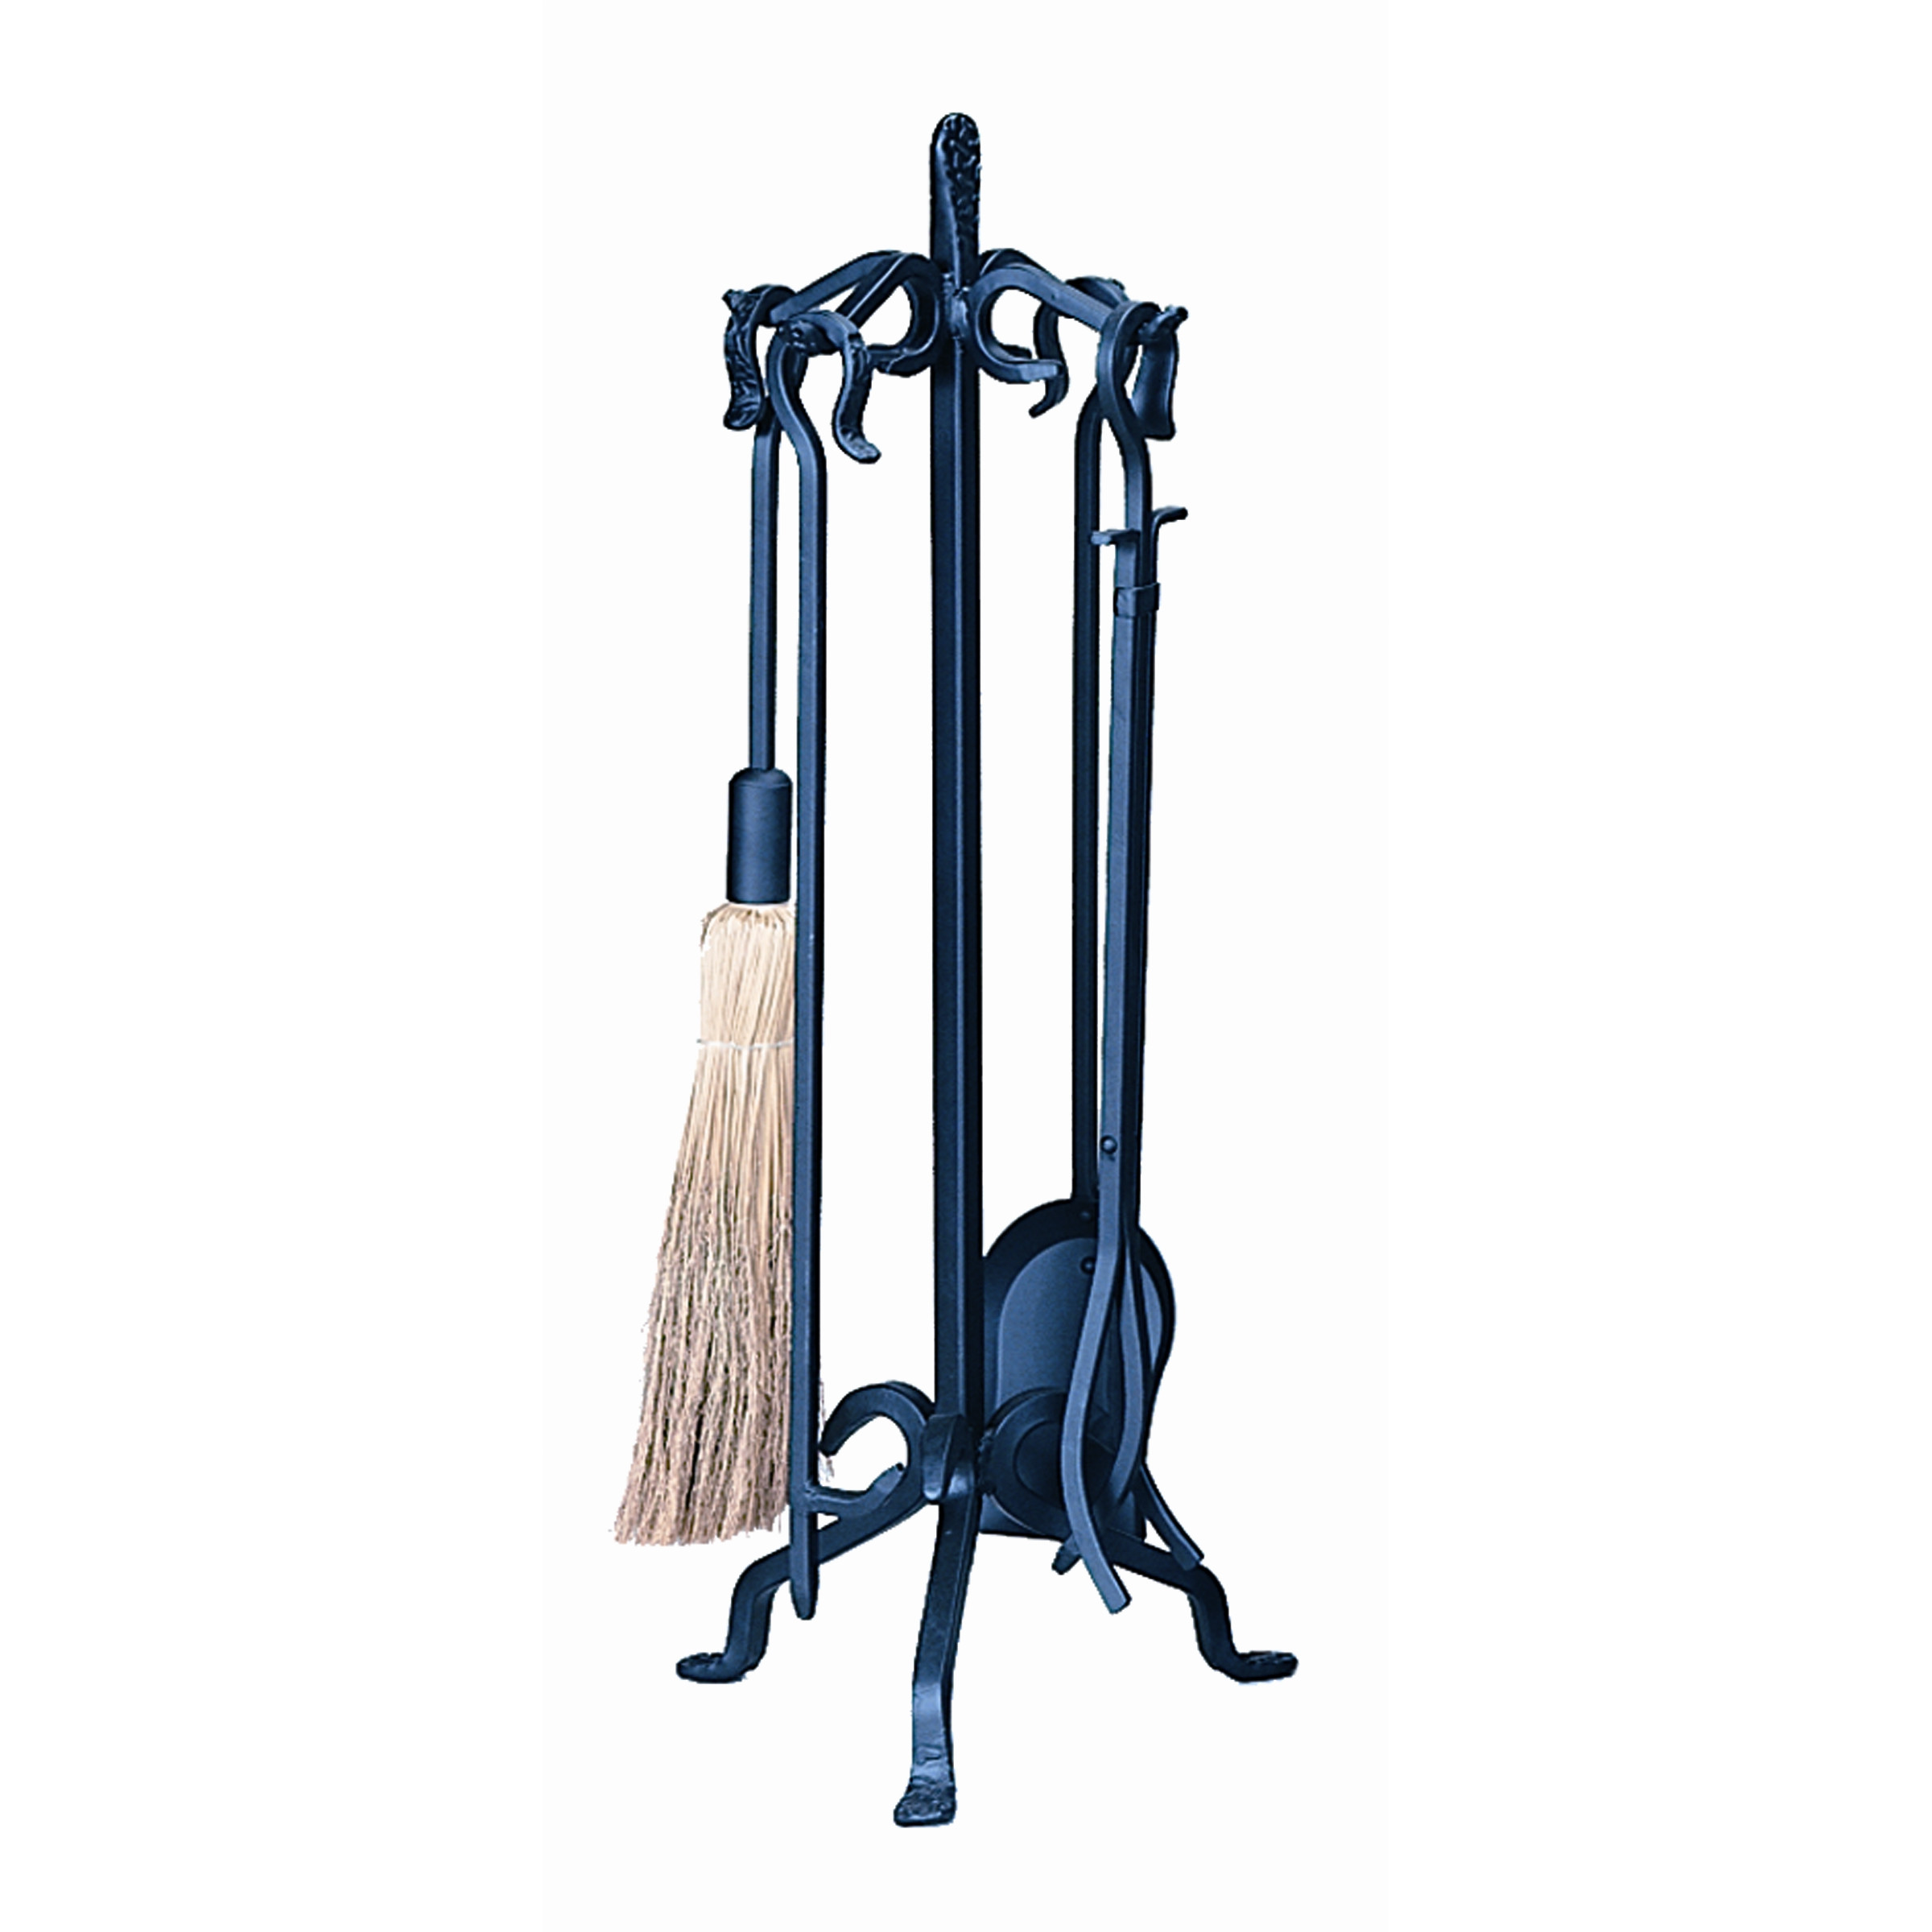 Amazing wrought iron fireplace tools pine firelace tool for your home interior tool improvements